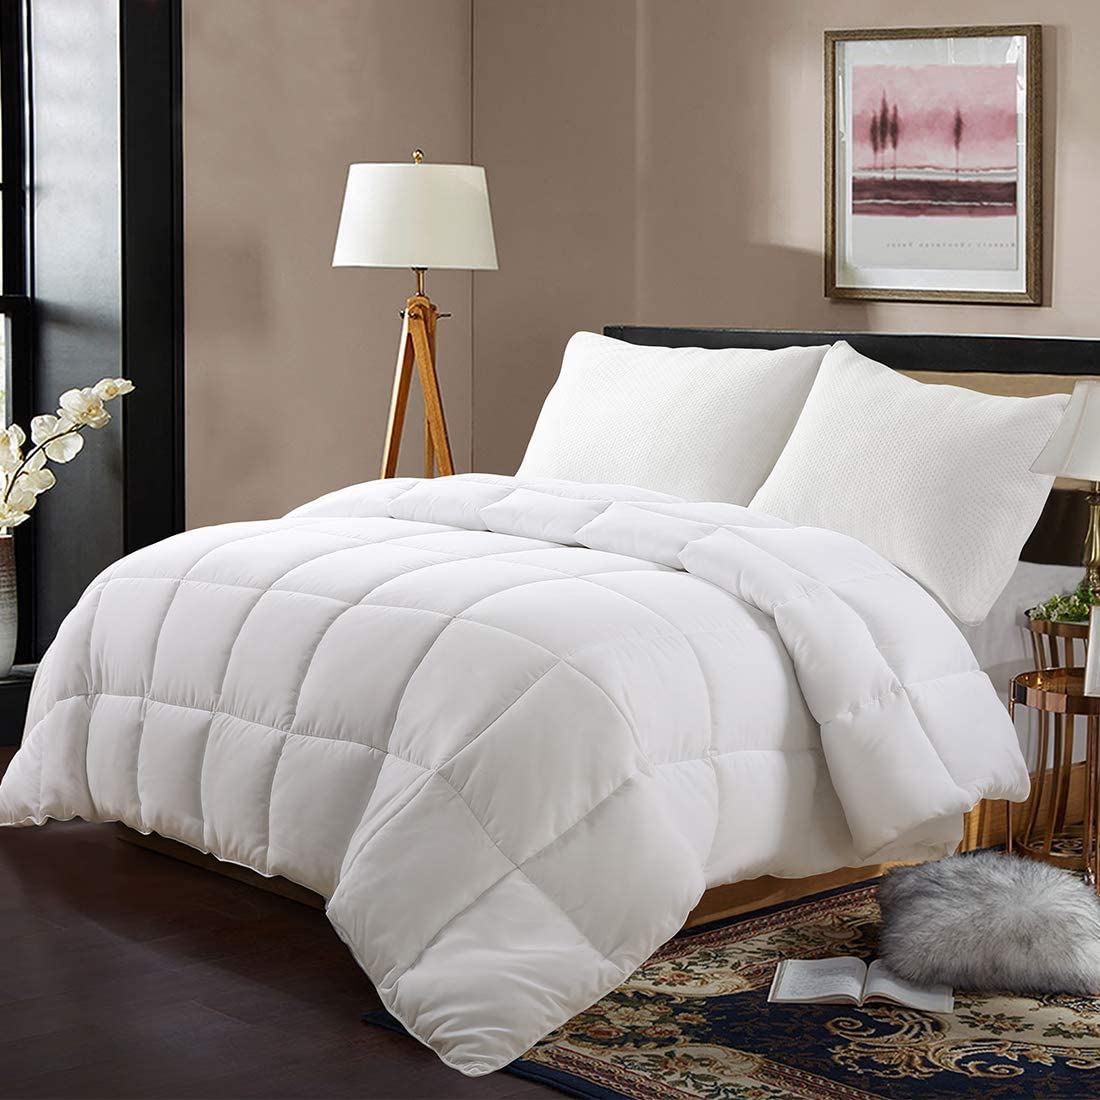 EDILLY Luxury Down Alternative Quilted Queen Comforter-Stand Alone Comforter for Queen Size Bed,Year Round Duvet Insert with 4 Corner Tabs,88''x 88'',White Pro